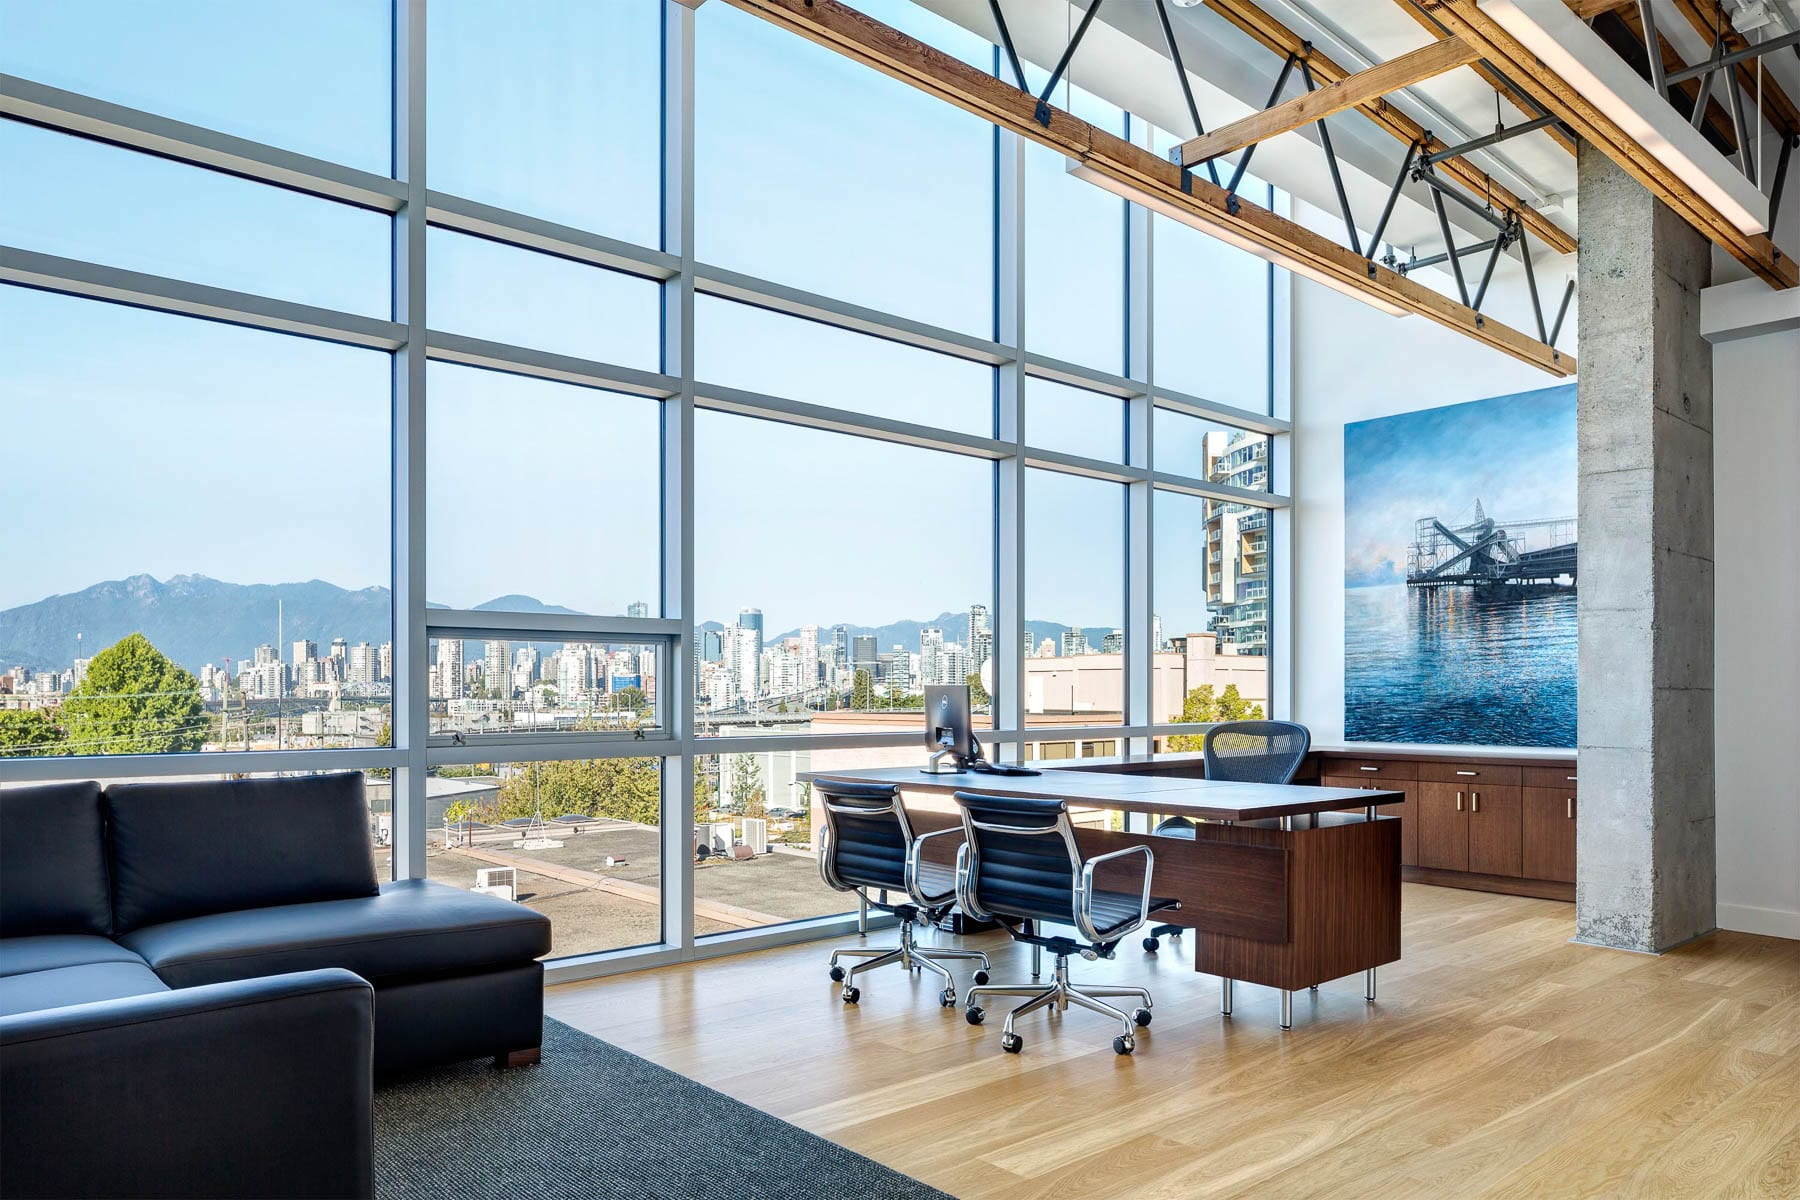 Austeville Properties' new head office looking out to beautiful Vancouver